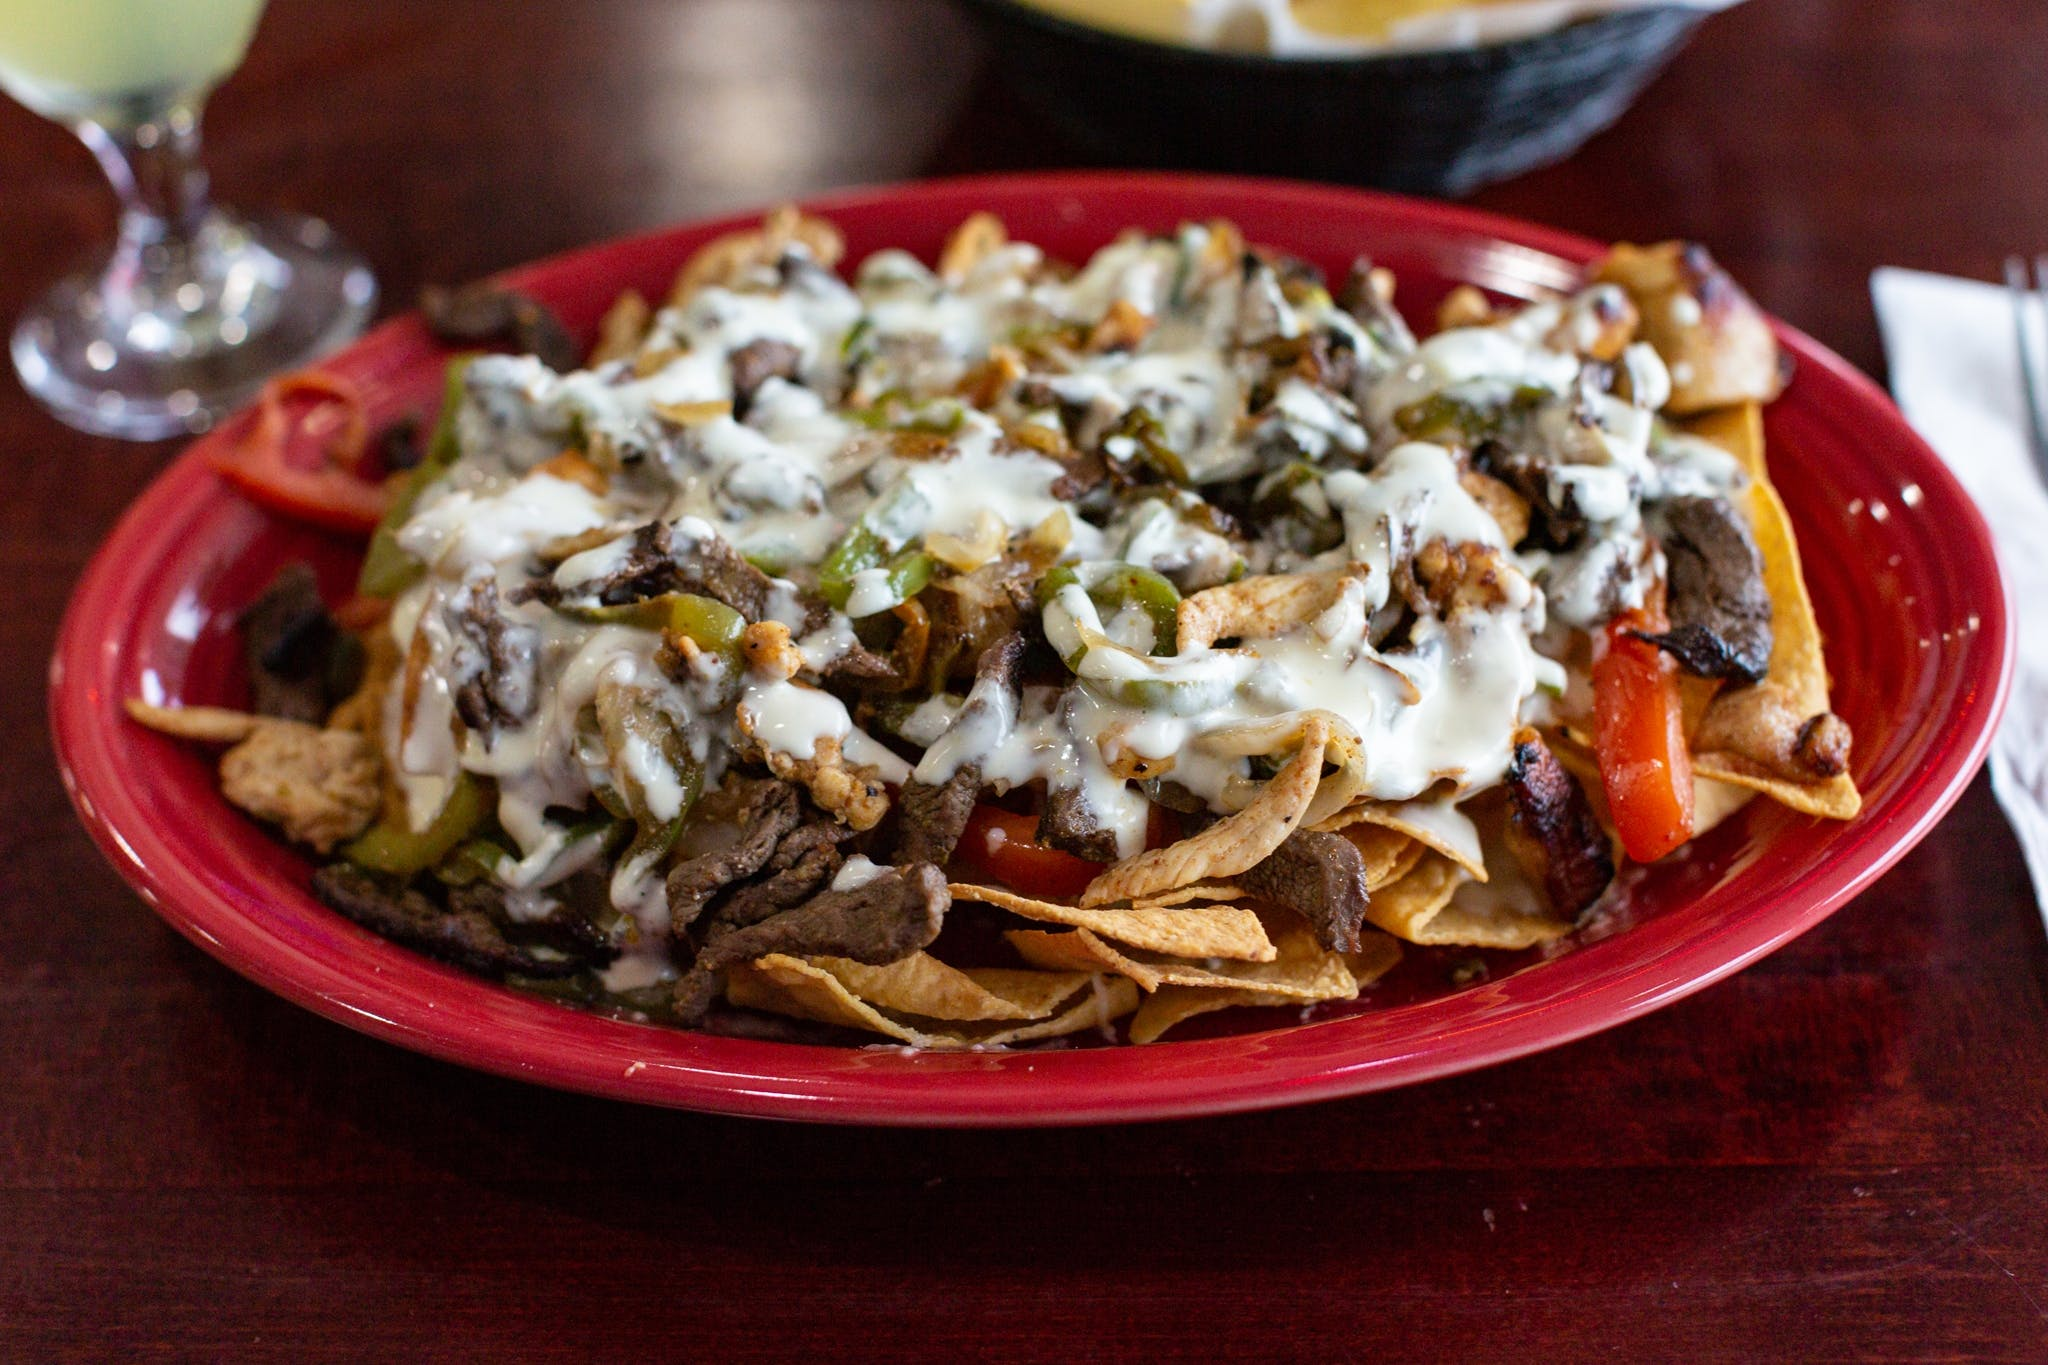 Nachos Fajitas from Acapulco Mexican Grill in Lawrence, KS